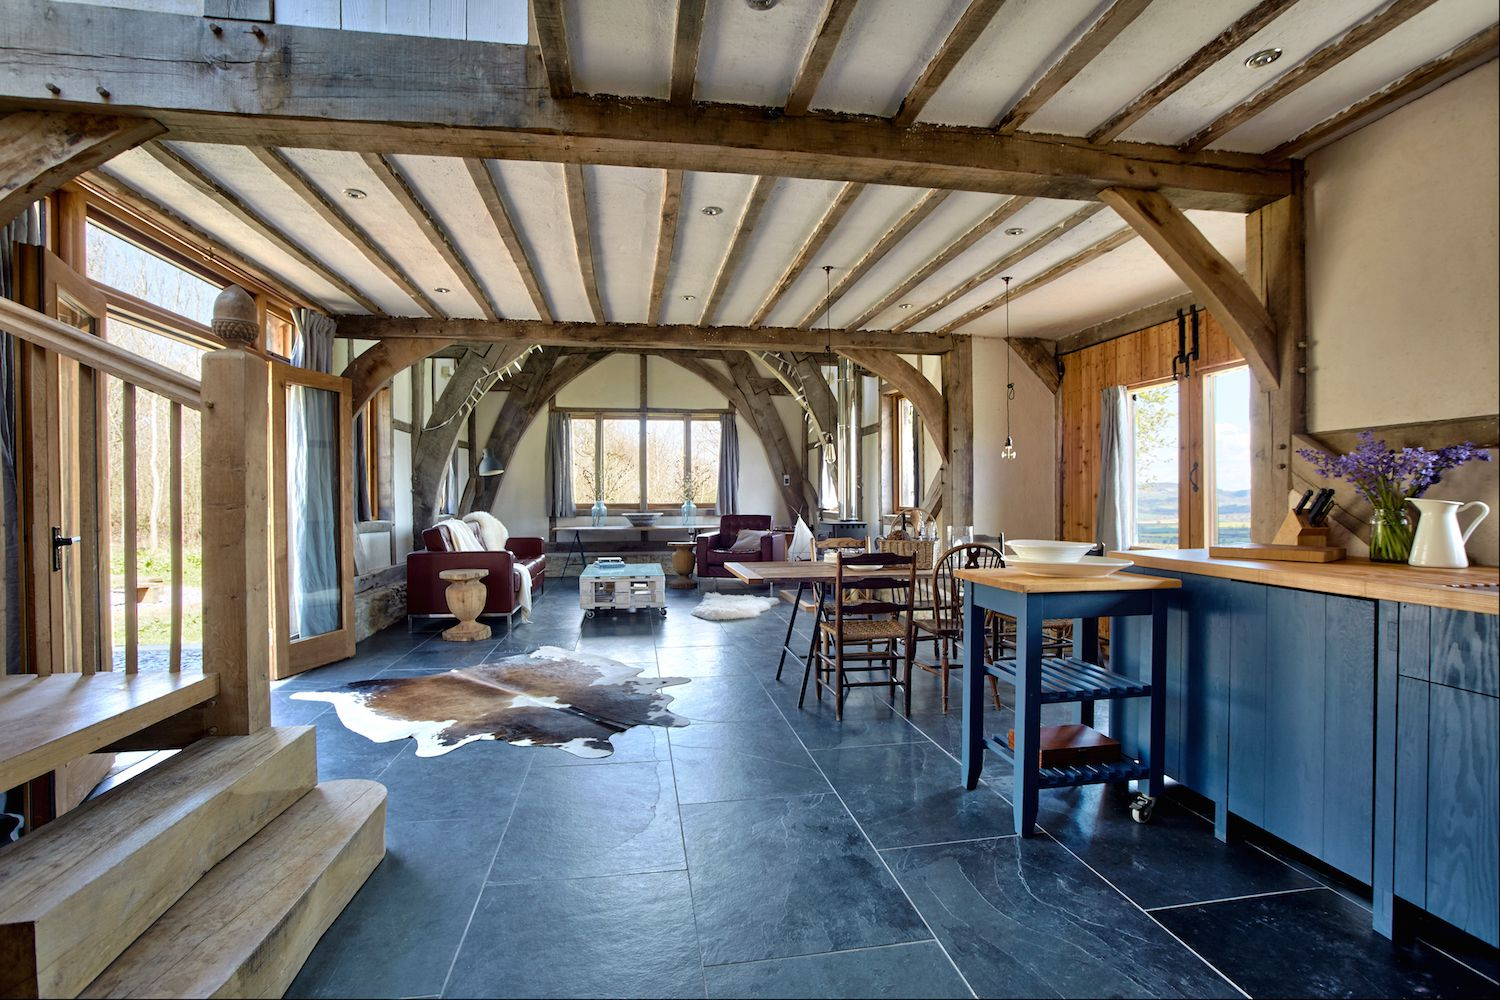 Self-Catering in Herefordshire holidays at Cool Places